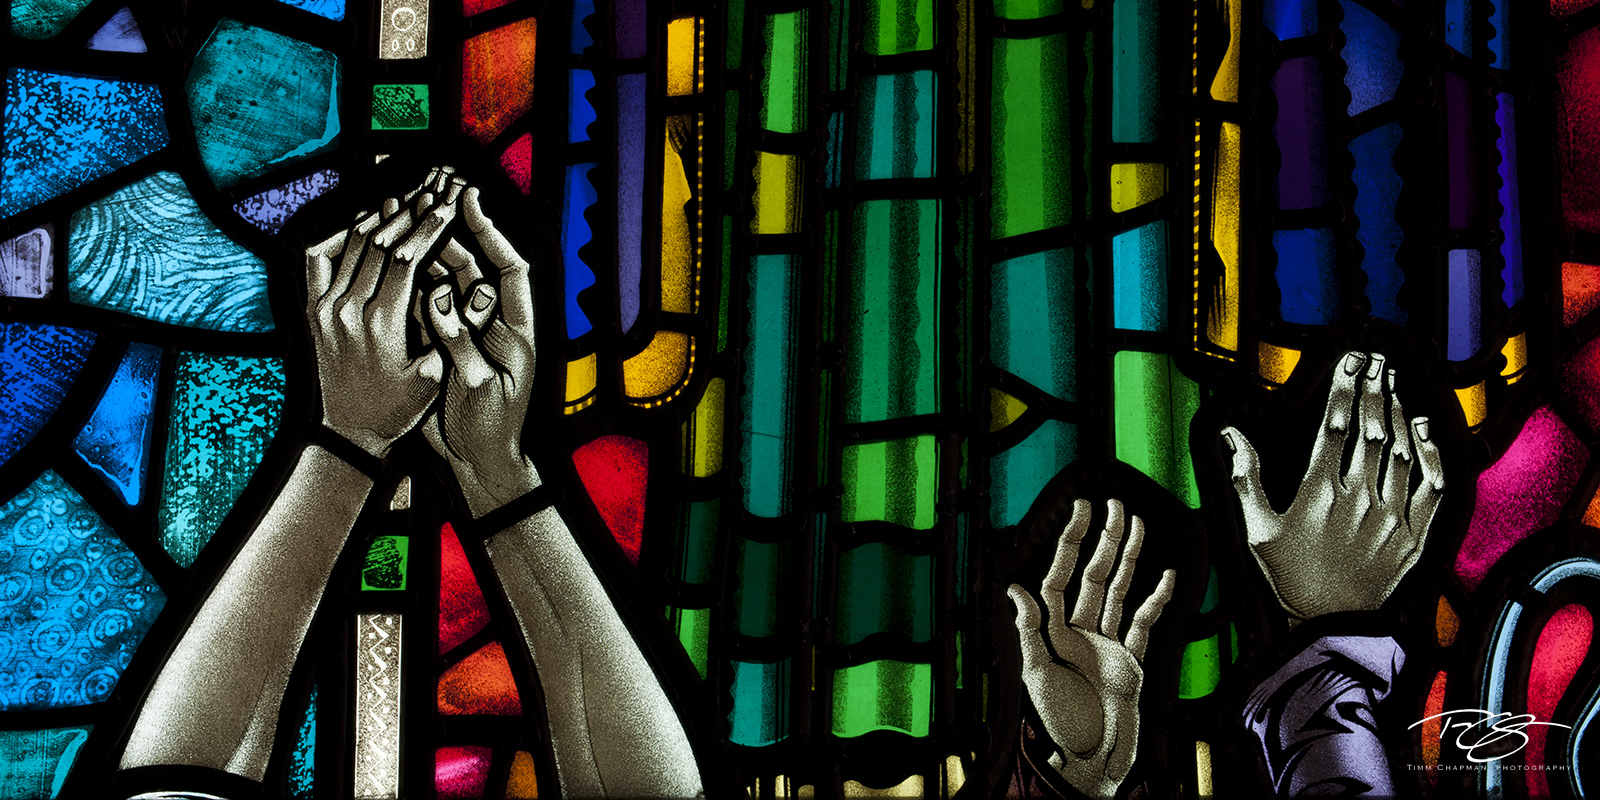 Iceland, Hallgrímskirkja, stained glass, healing hands, colorful, praying hands, helping hands, faith, help, sanctuary, support, panorama